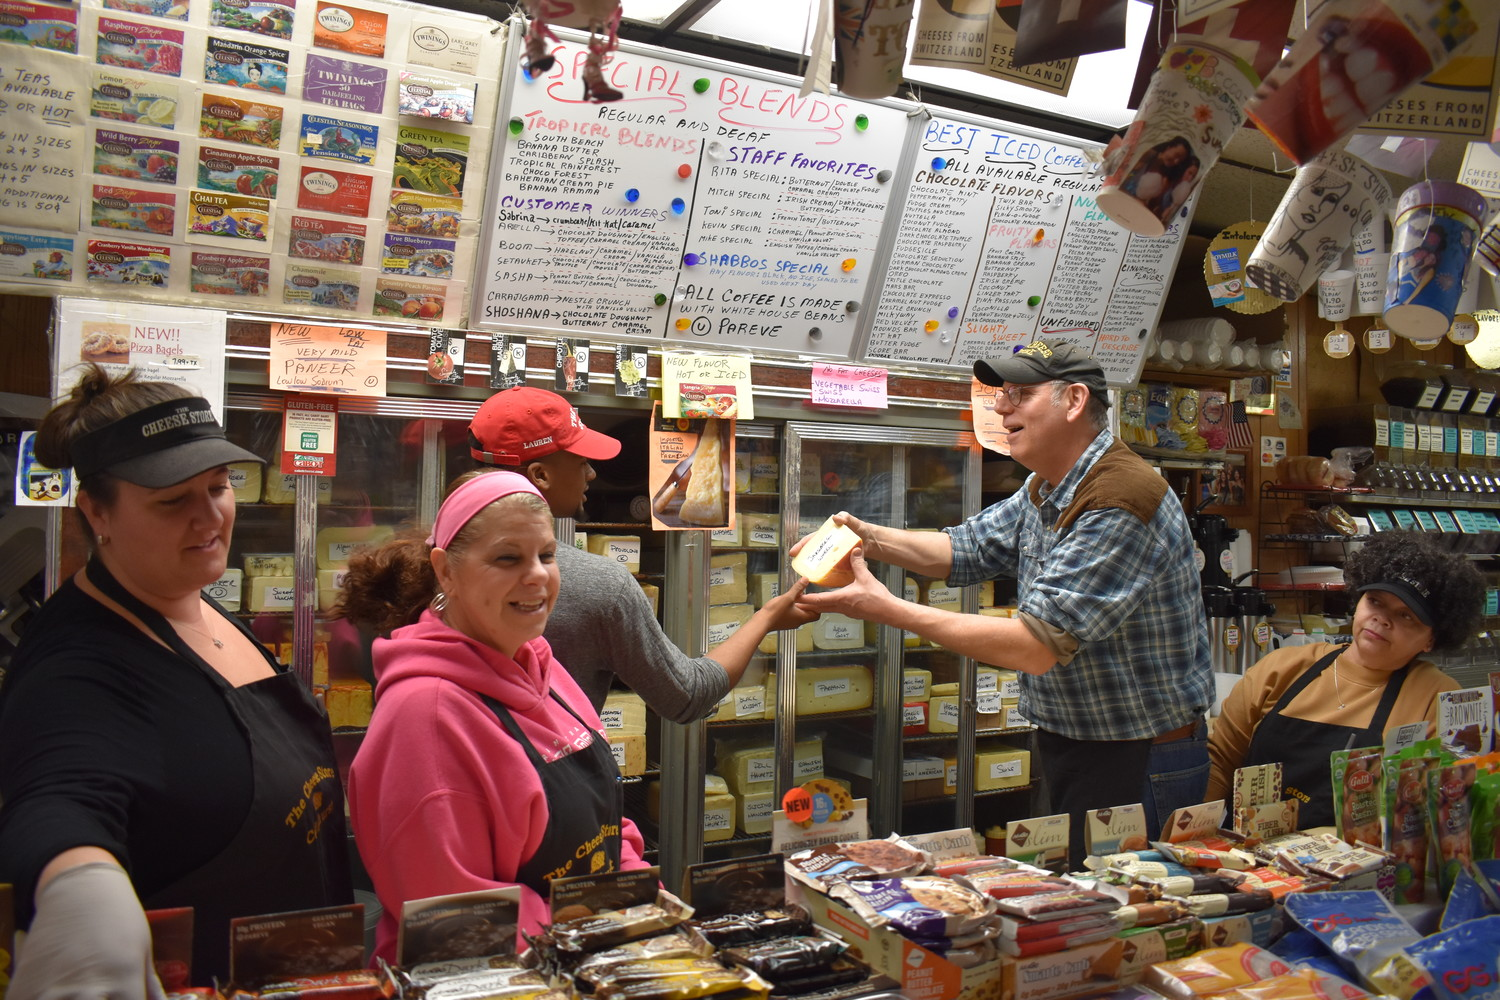 Cheese Store owner Mitch Rakita has run the business for 41 years, and also behind the counter is a combined 86 years of experience. From left, Angela Volante, Rita Volante, Malik Highsmith, Rakita and Antoinette Ortiz.